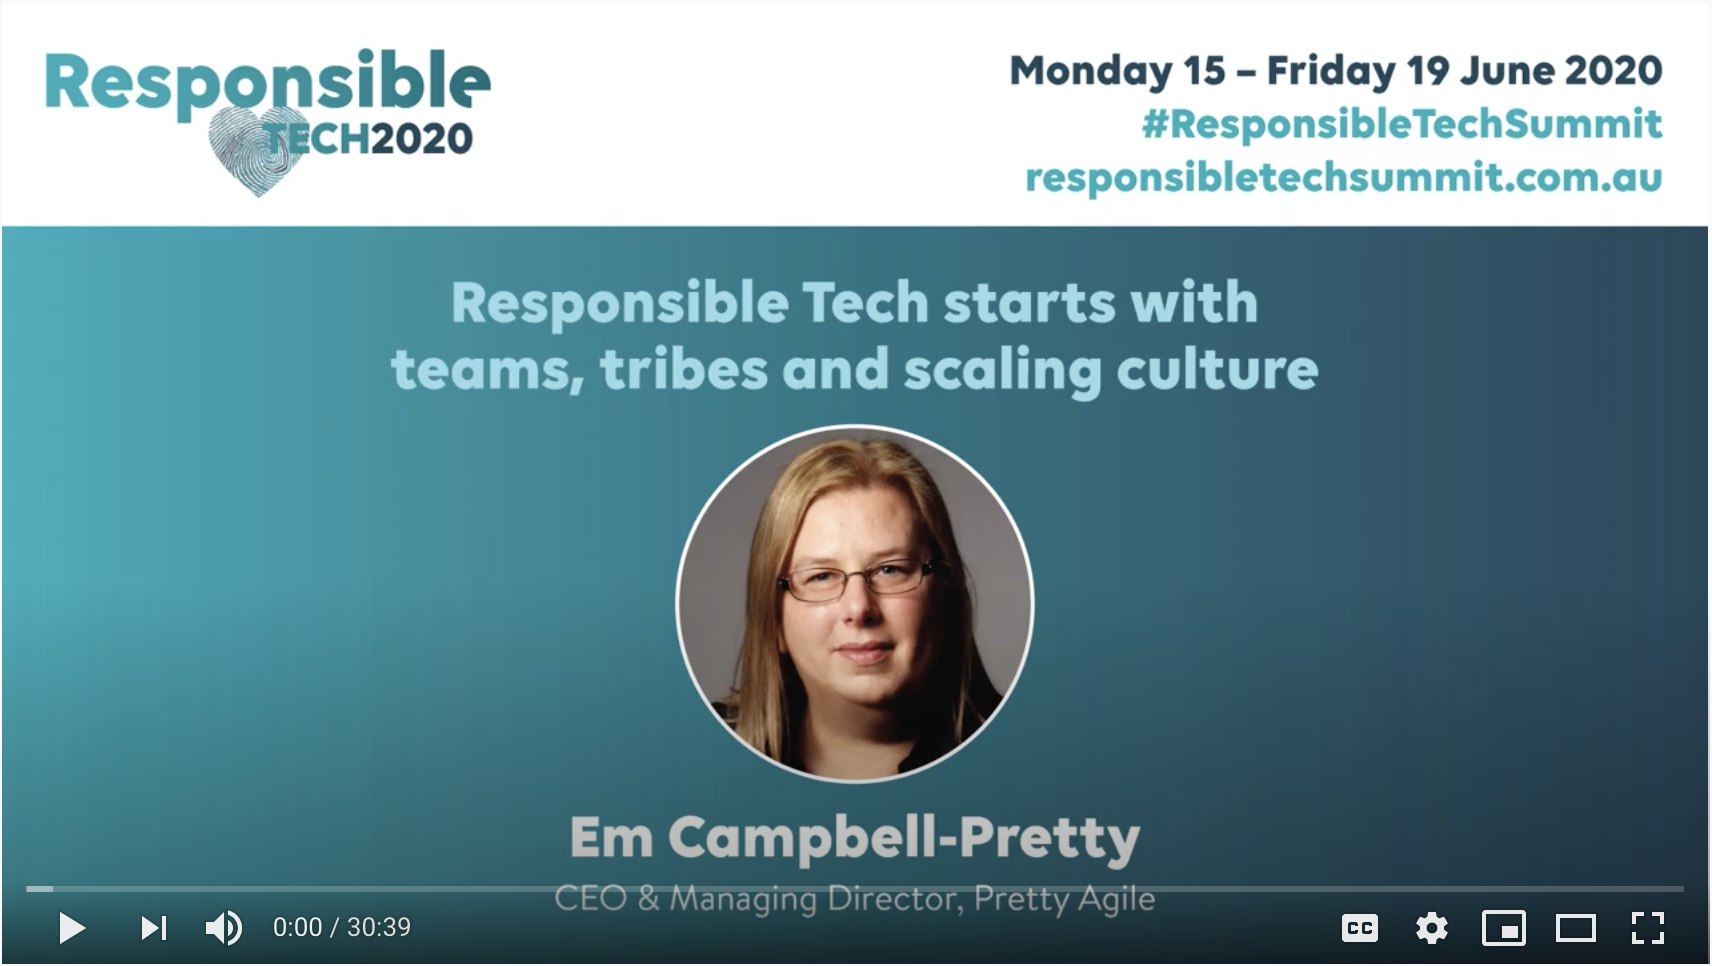 Responsible Tech Start with Culture